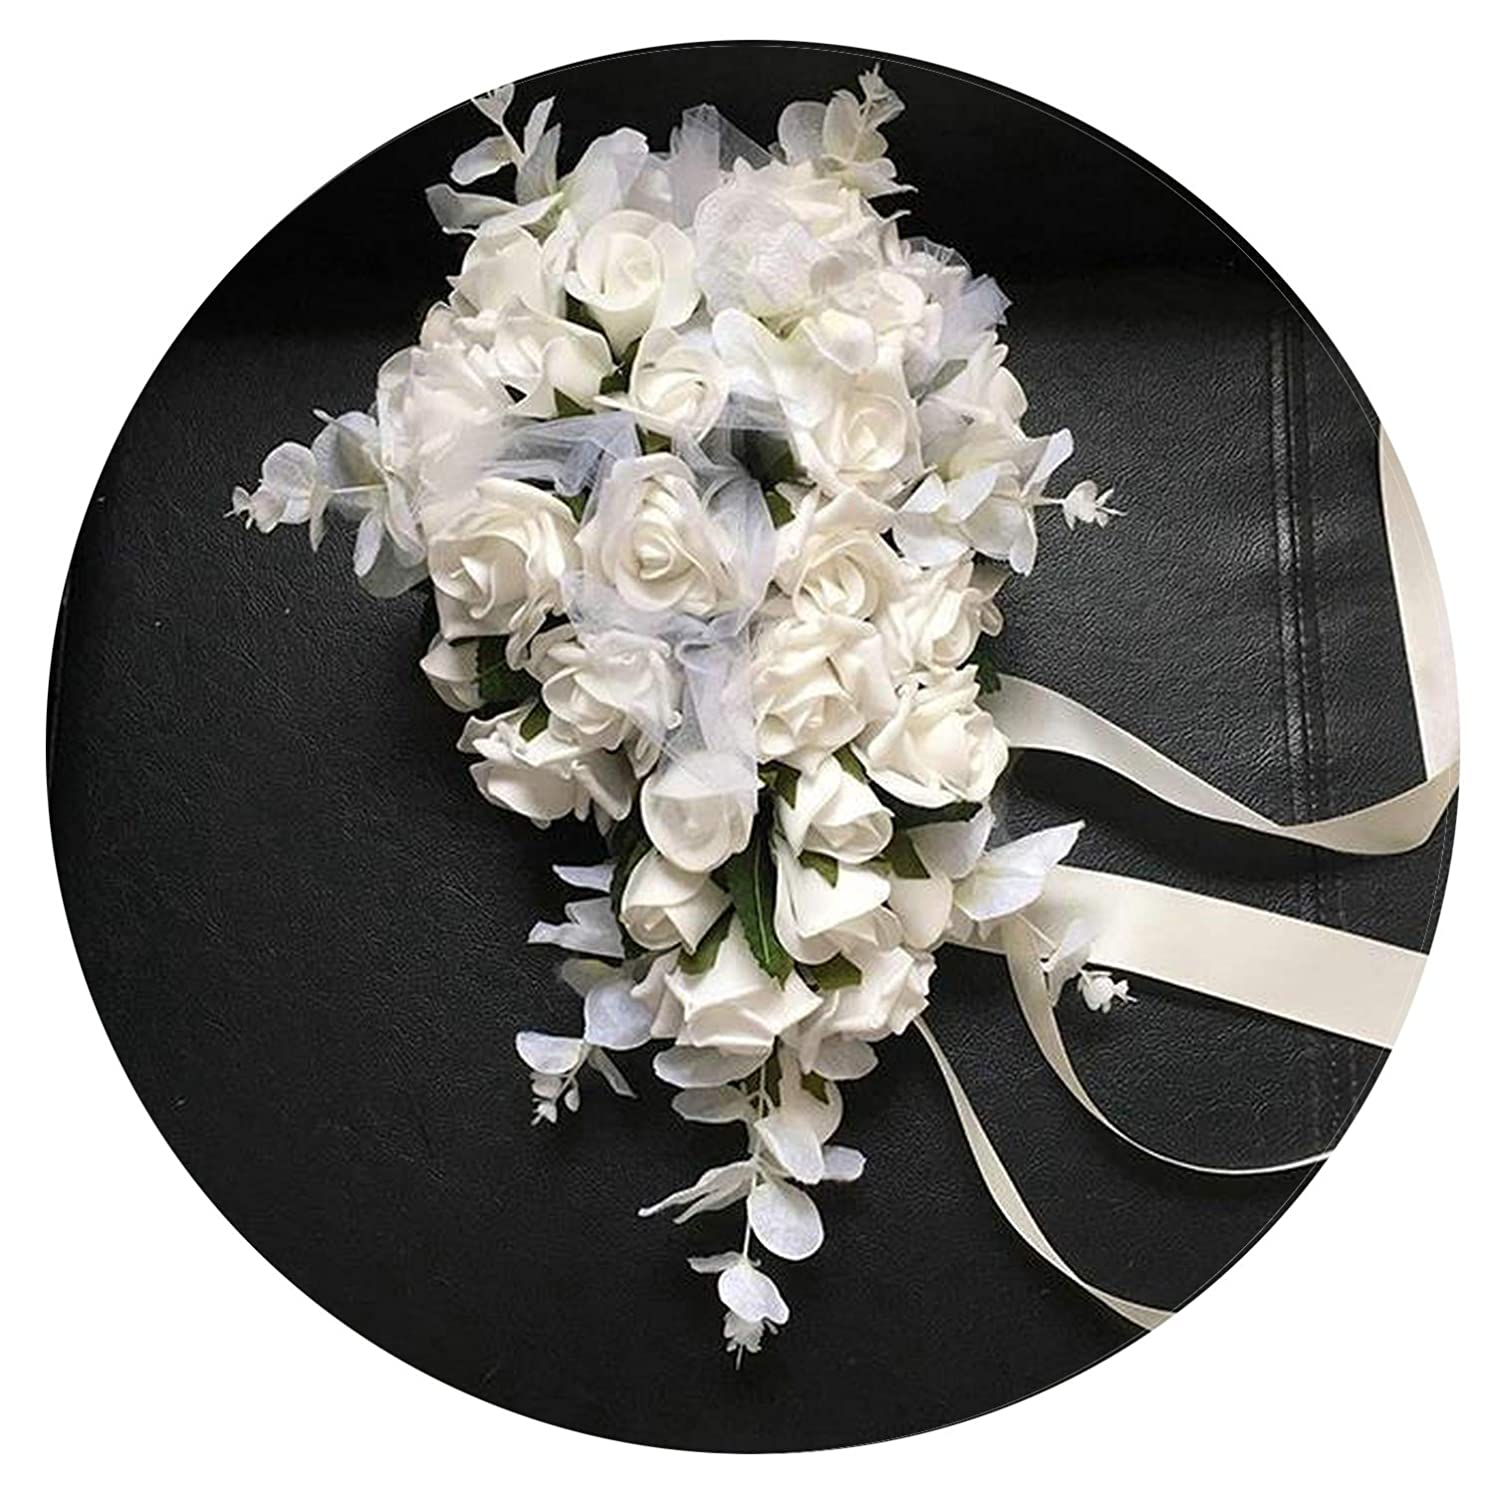 Wedding Bouquets Good Buque Noiva Purple White Bridal Bouquet Artificial Waterfall Flowers Bridesmaid Romantic Handmade Pe Wedding Bouquet For Bride Wedding Accessories